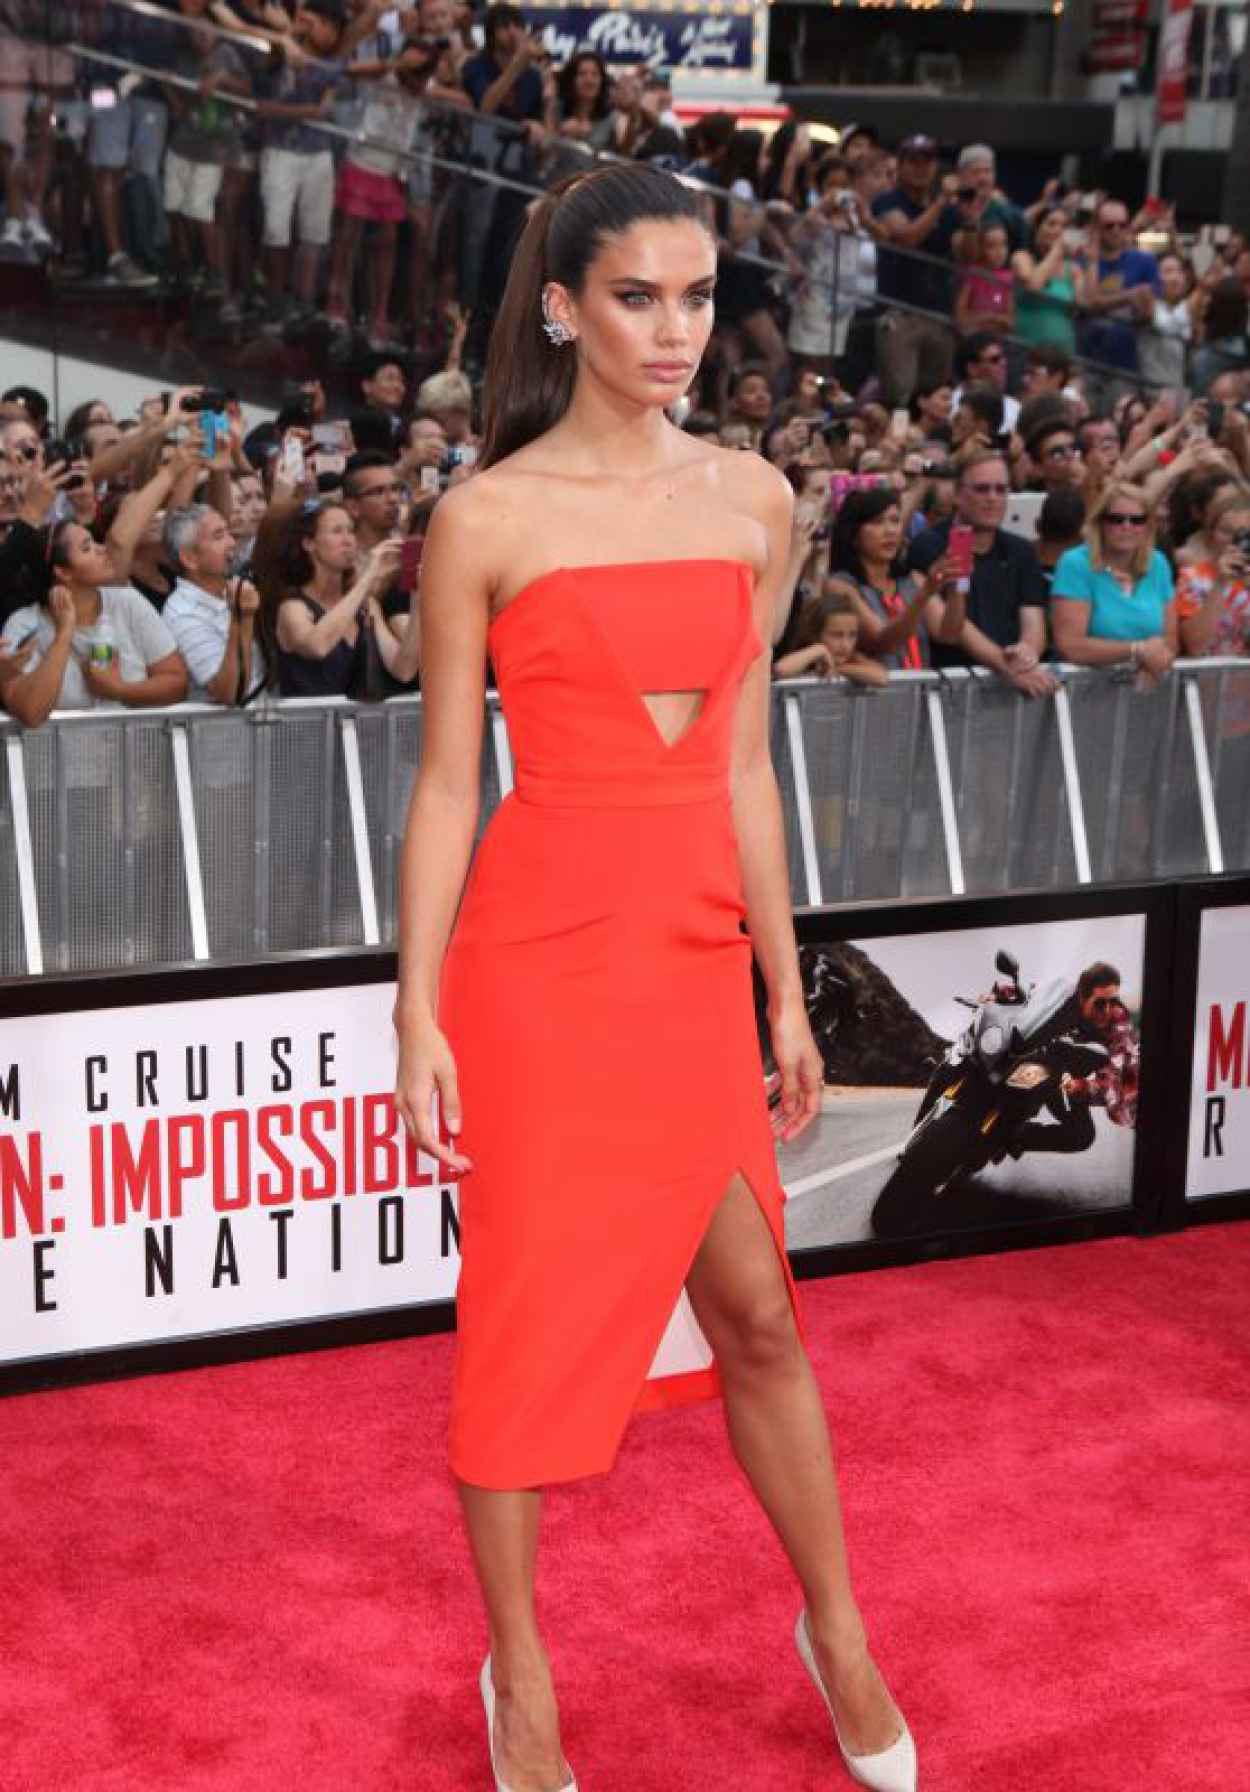 Sara Sampaio - Mission Impossible: Rogue Nation Premiere in New York City-1